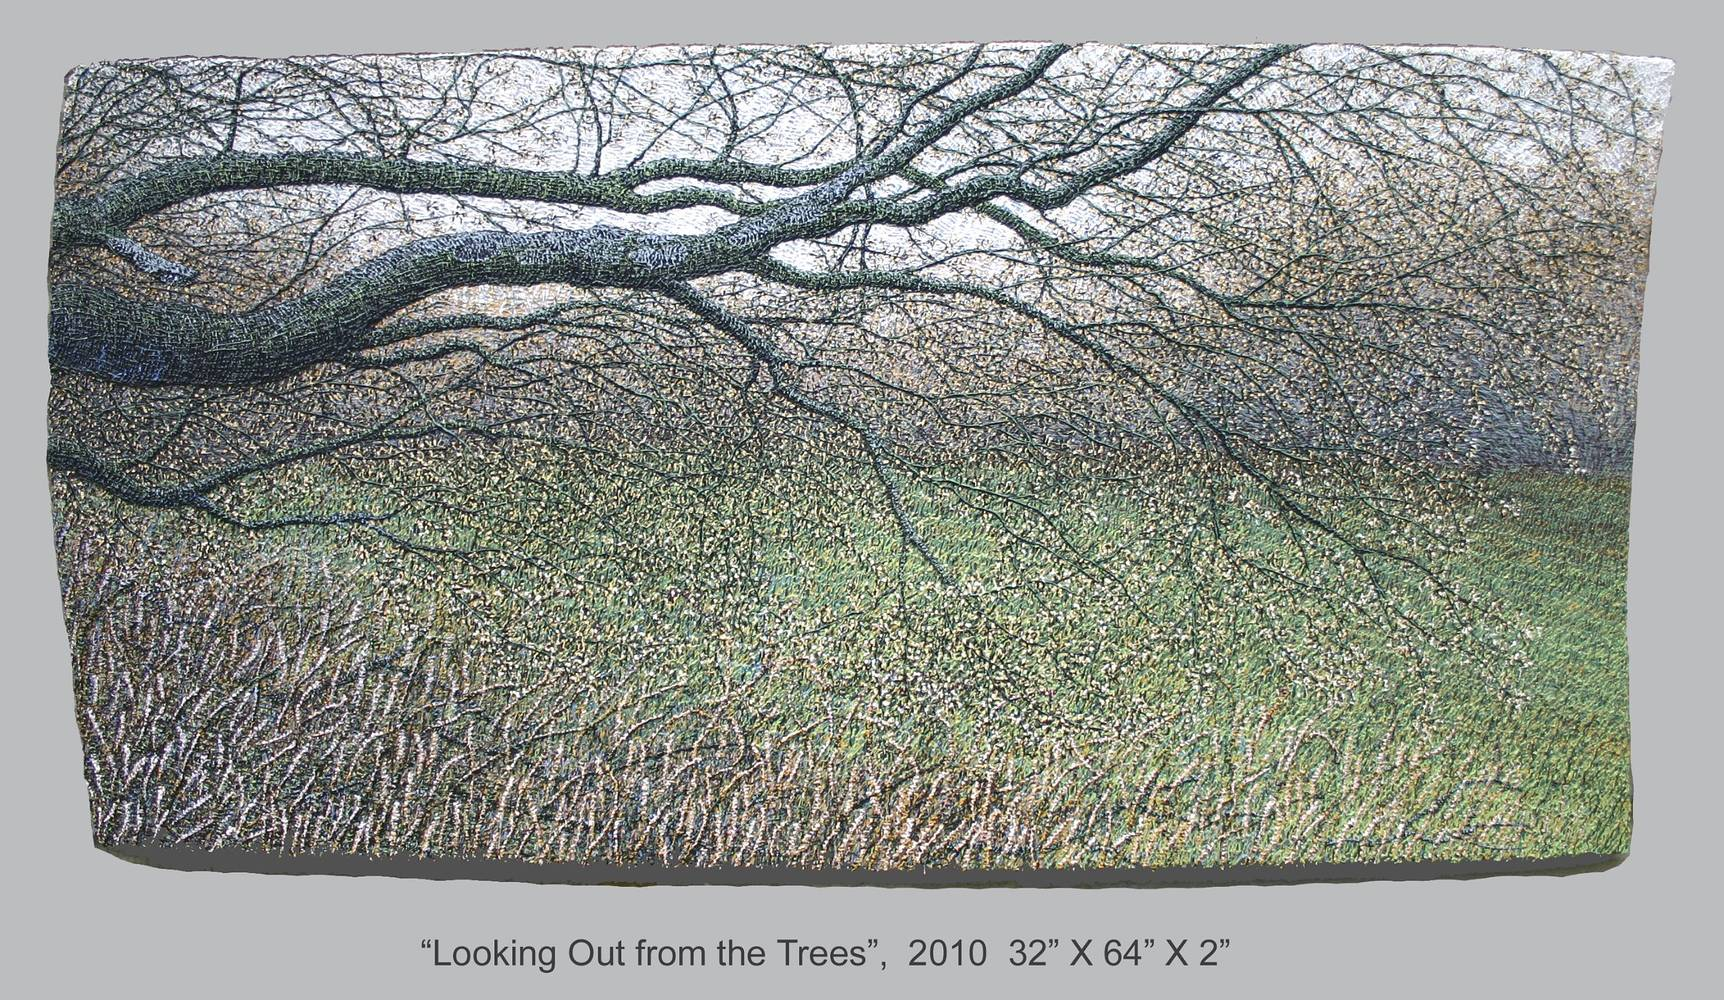 Looking Out from the Trees, 2010 by Douglas Moulden